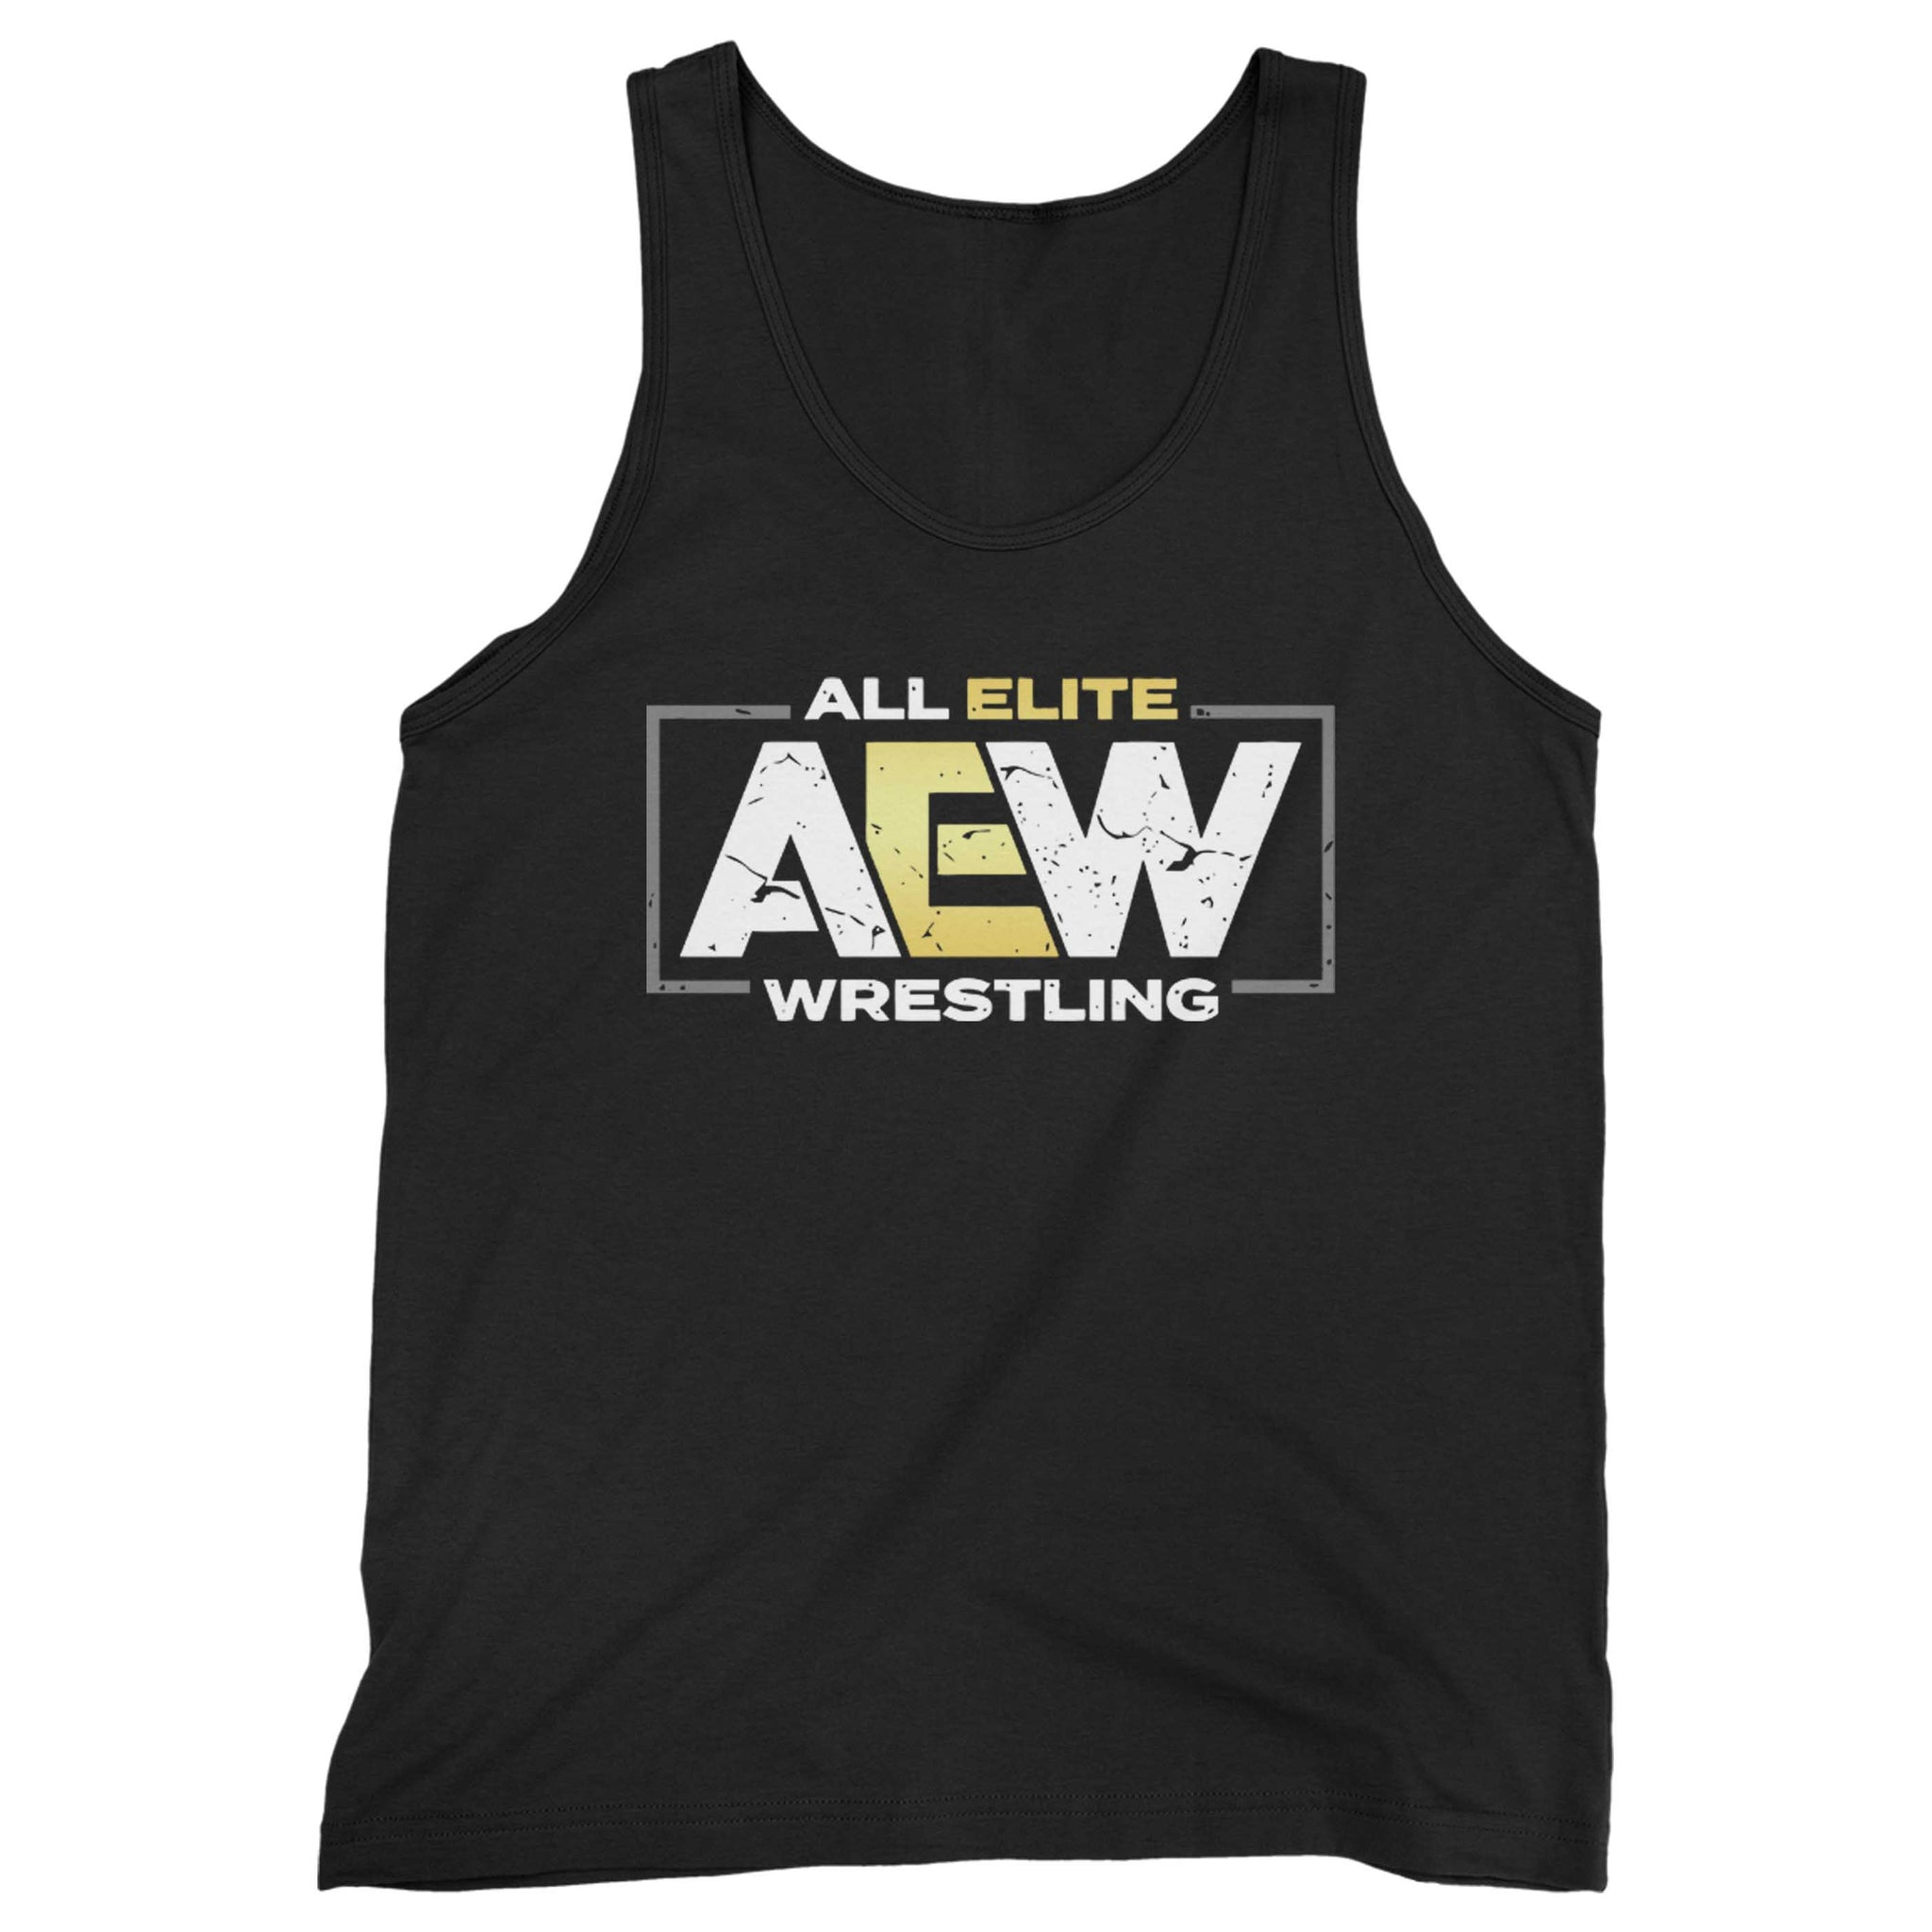 Aew All Elite Wrestling A New Era Man's Tank Top